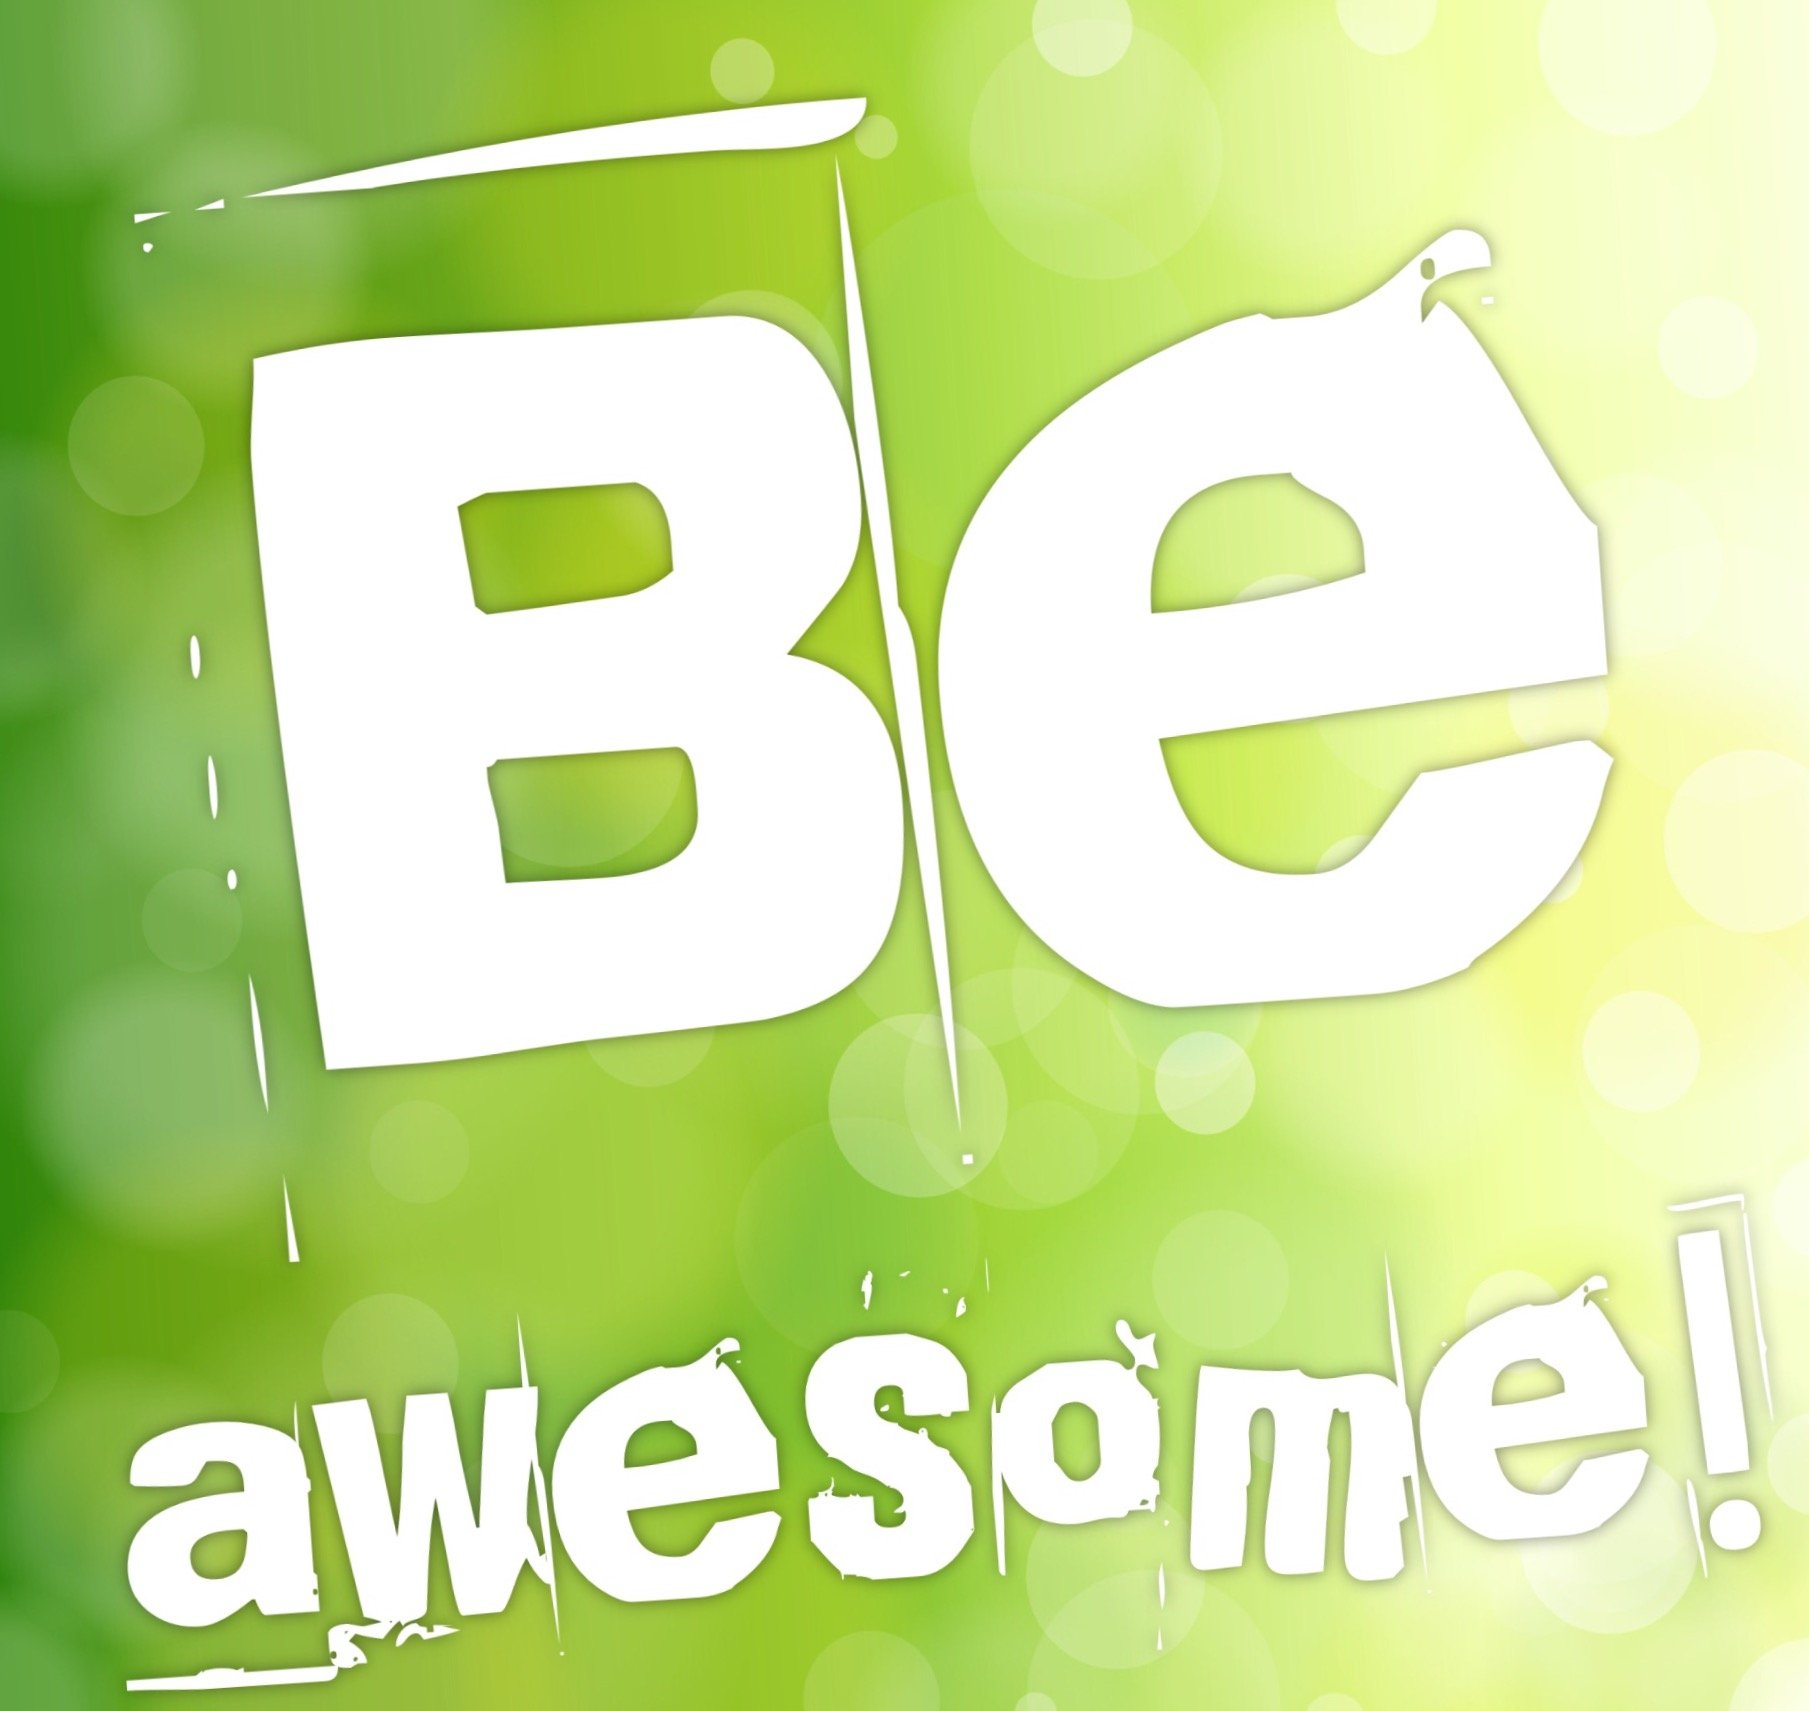 be awesome image